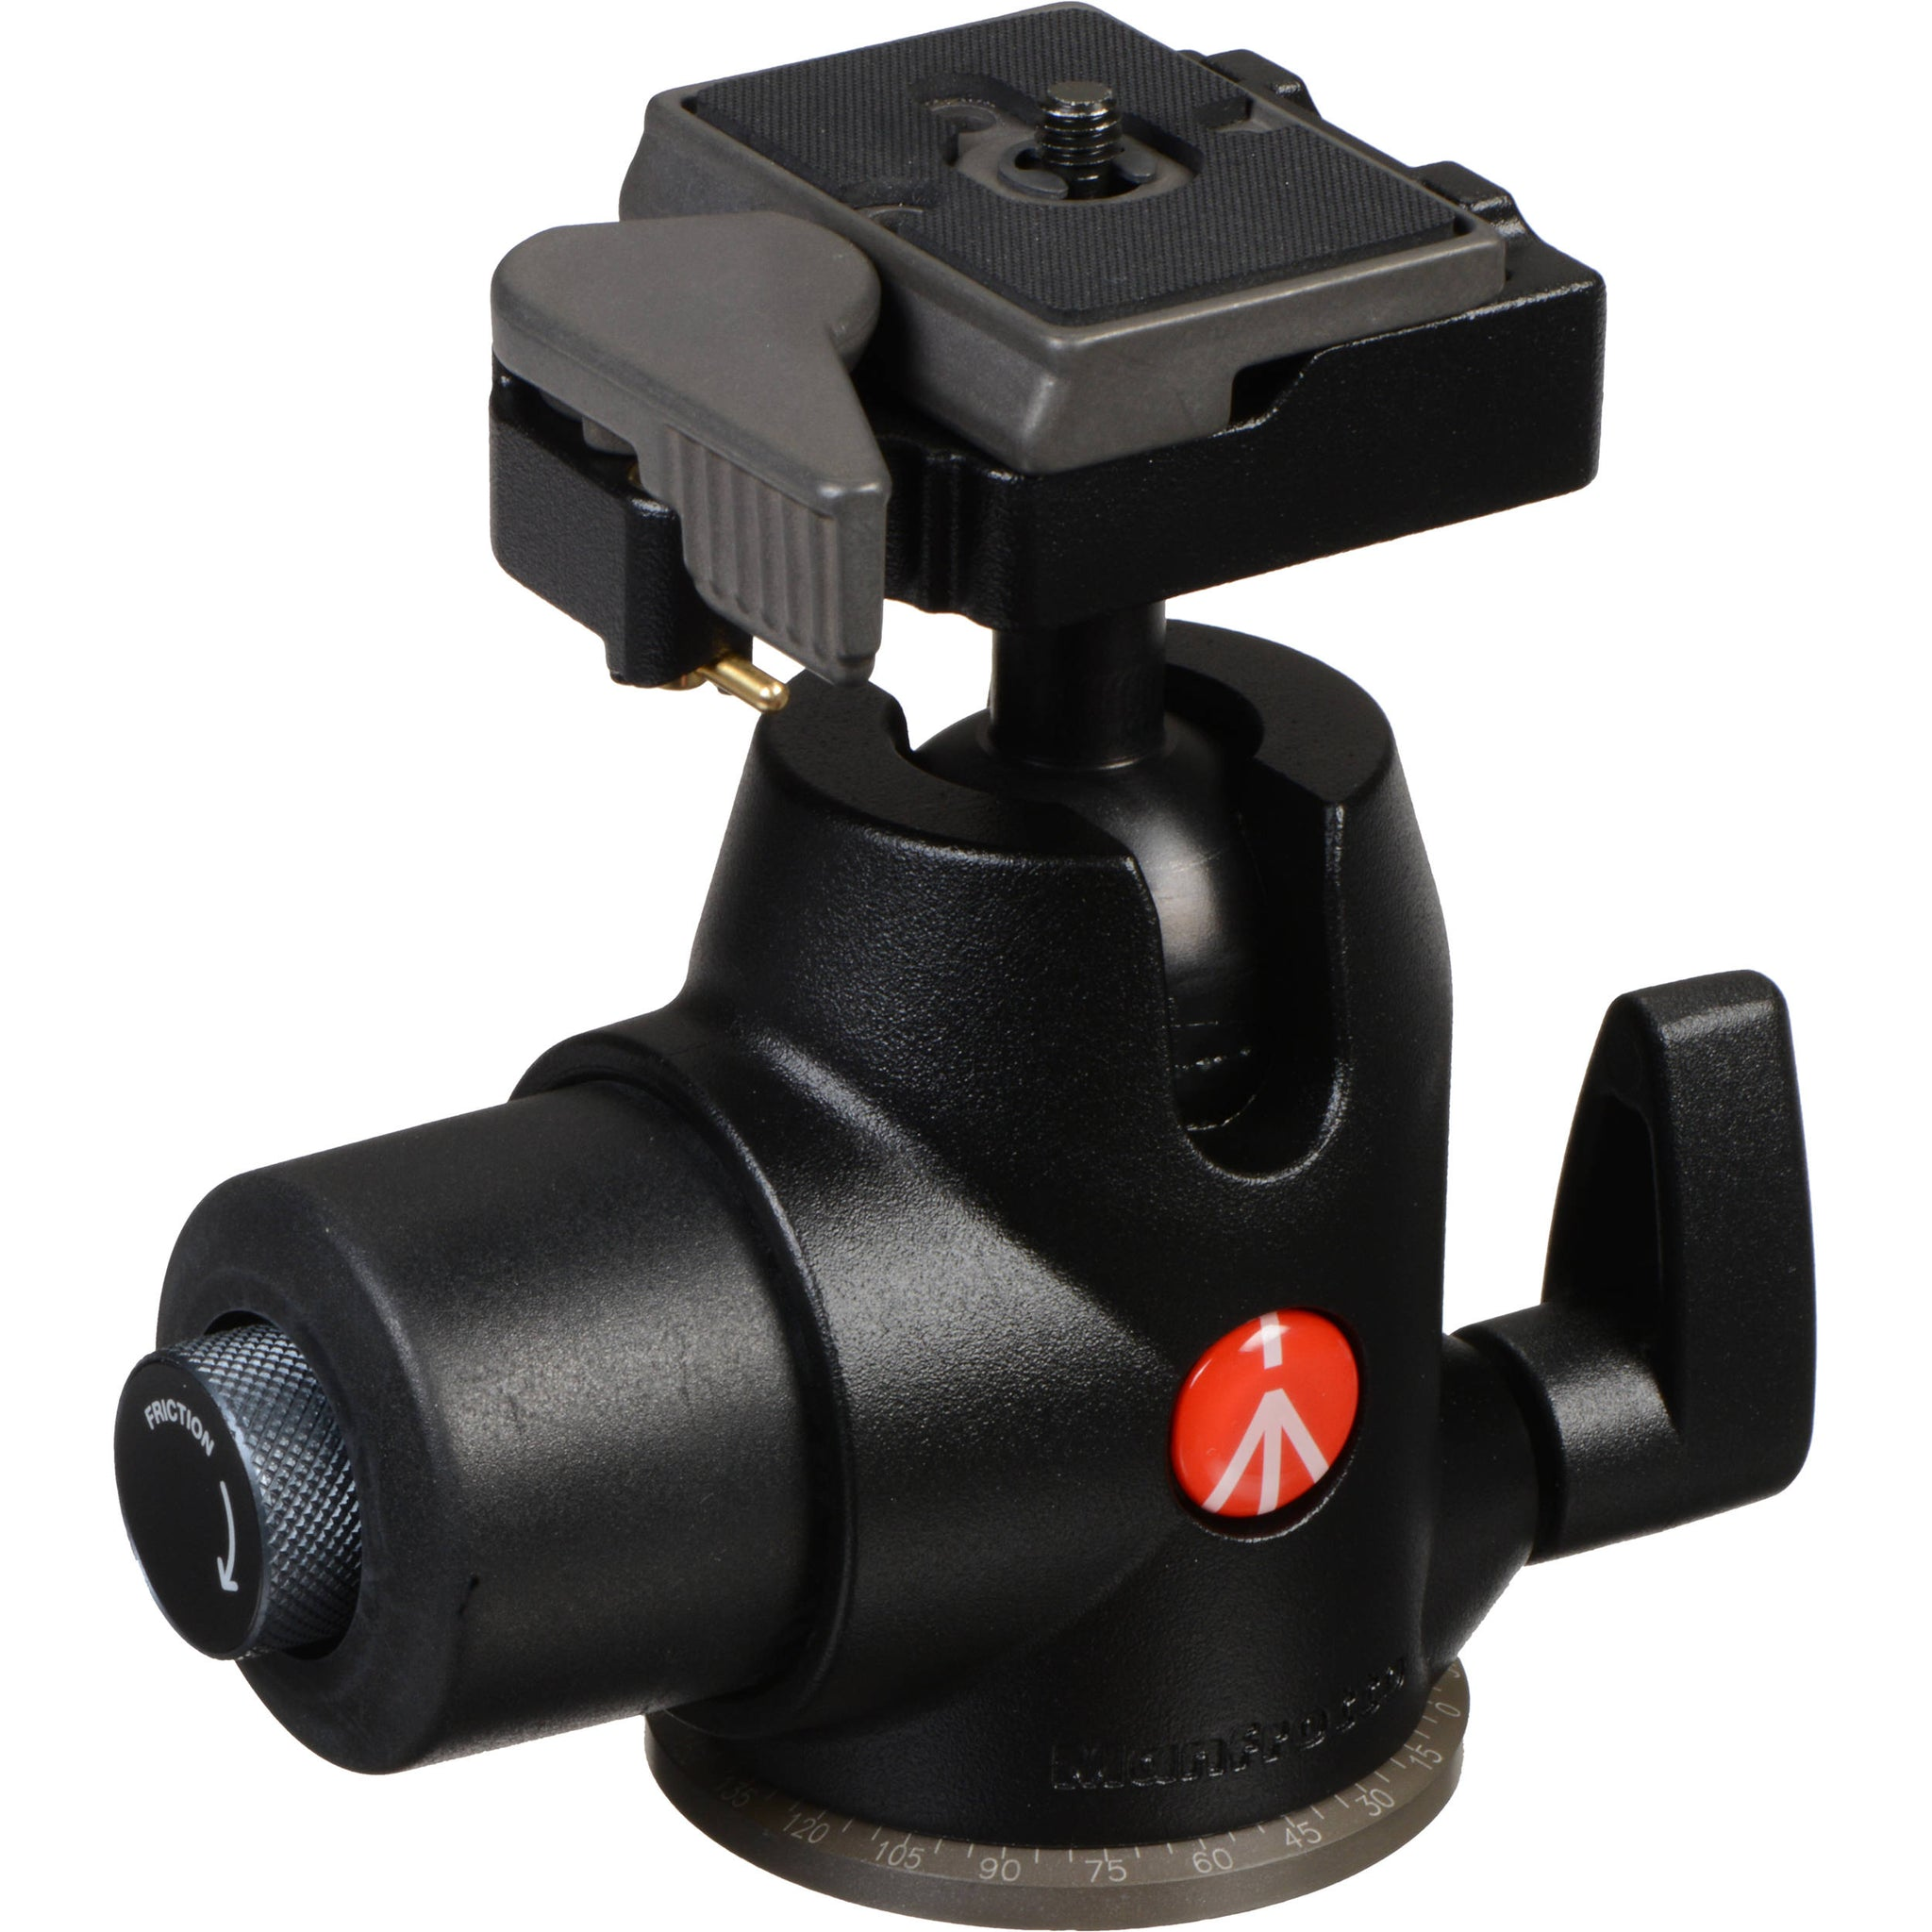 Manfrotto 468MG Hydrostatic Ball Head with 200PL-14 Quick Release Plate